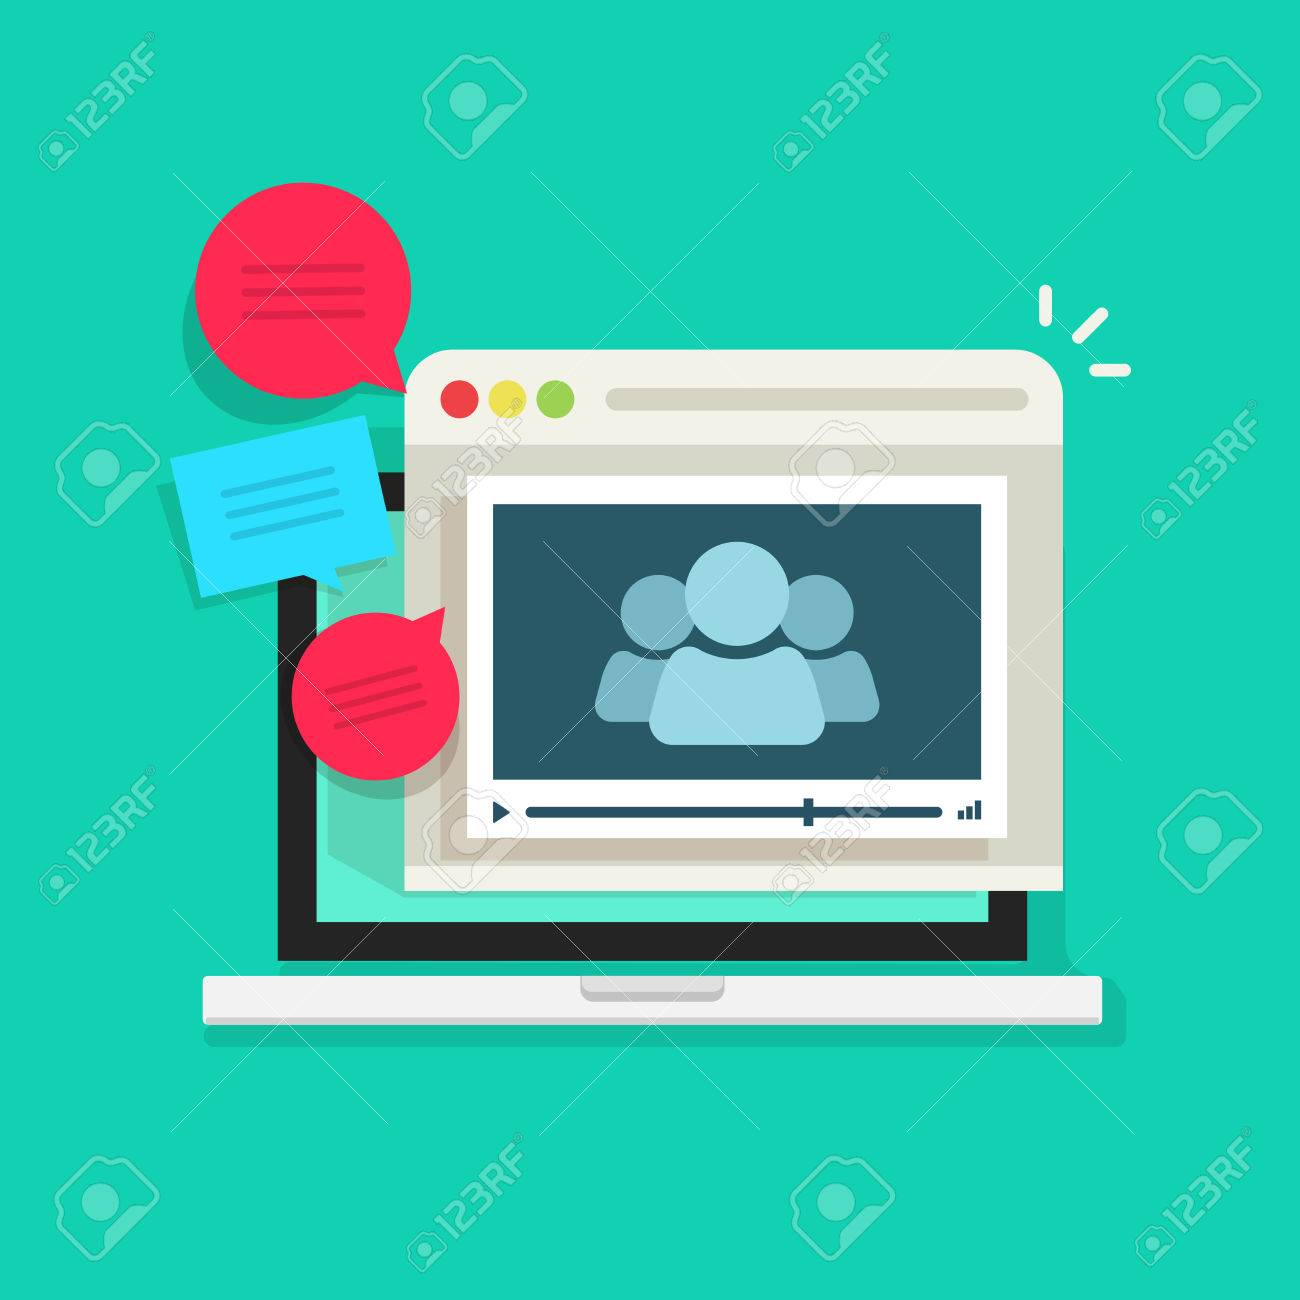 Online video conference vector icon isolated, abstract group of people in laptop video player speaking, talking, video call technology, online meeting communication concept, webinar icon - 58615554